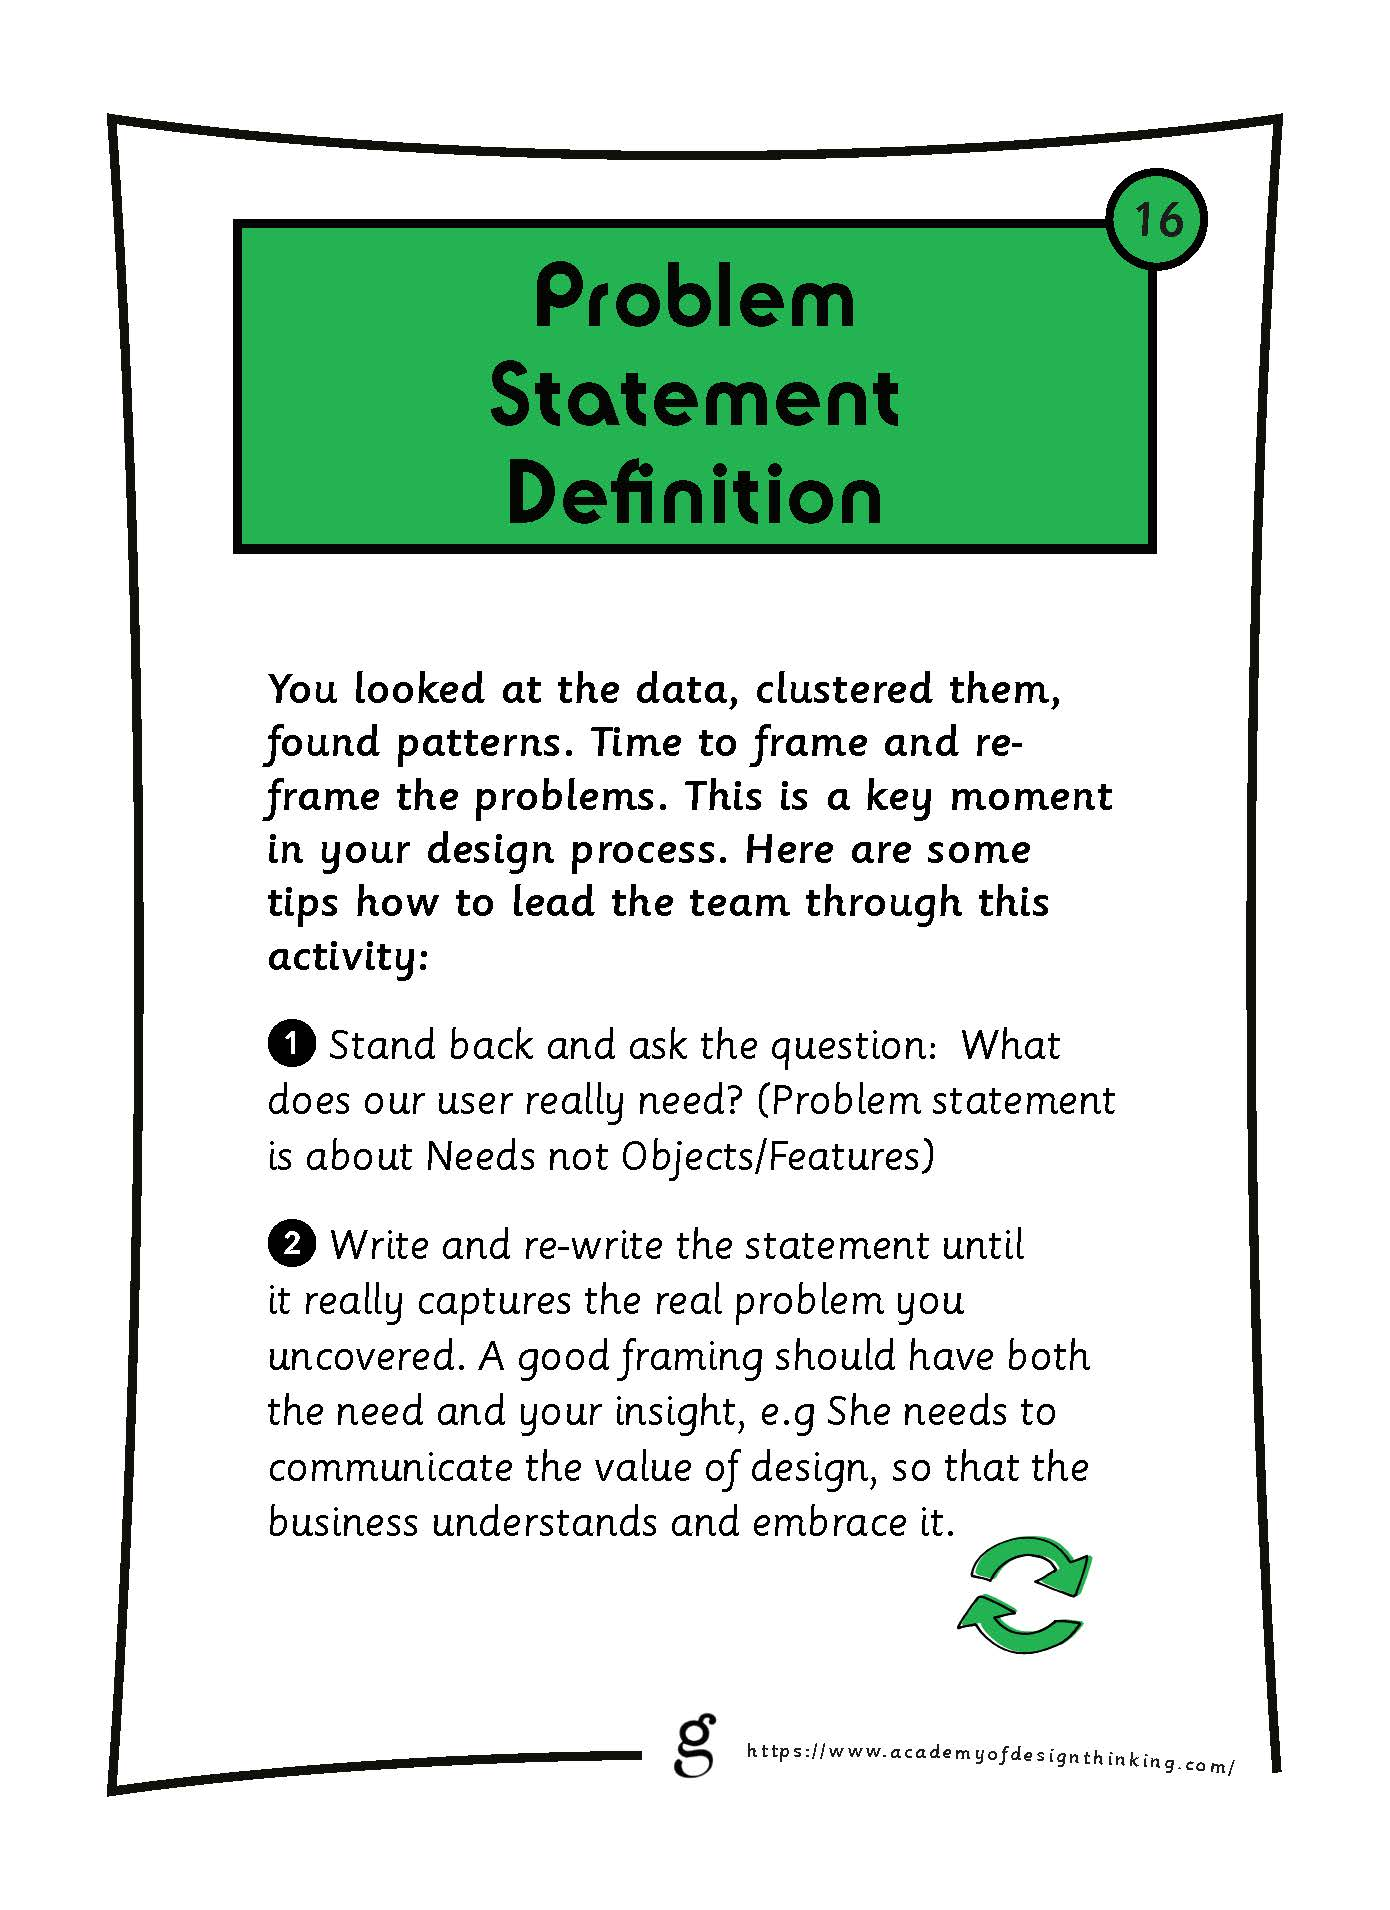 Problem Statement Definition